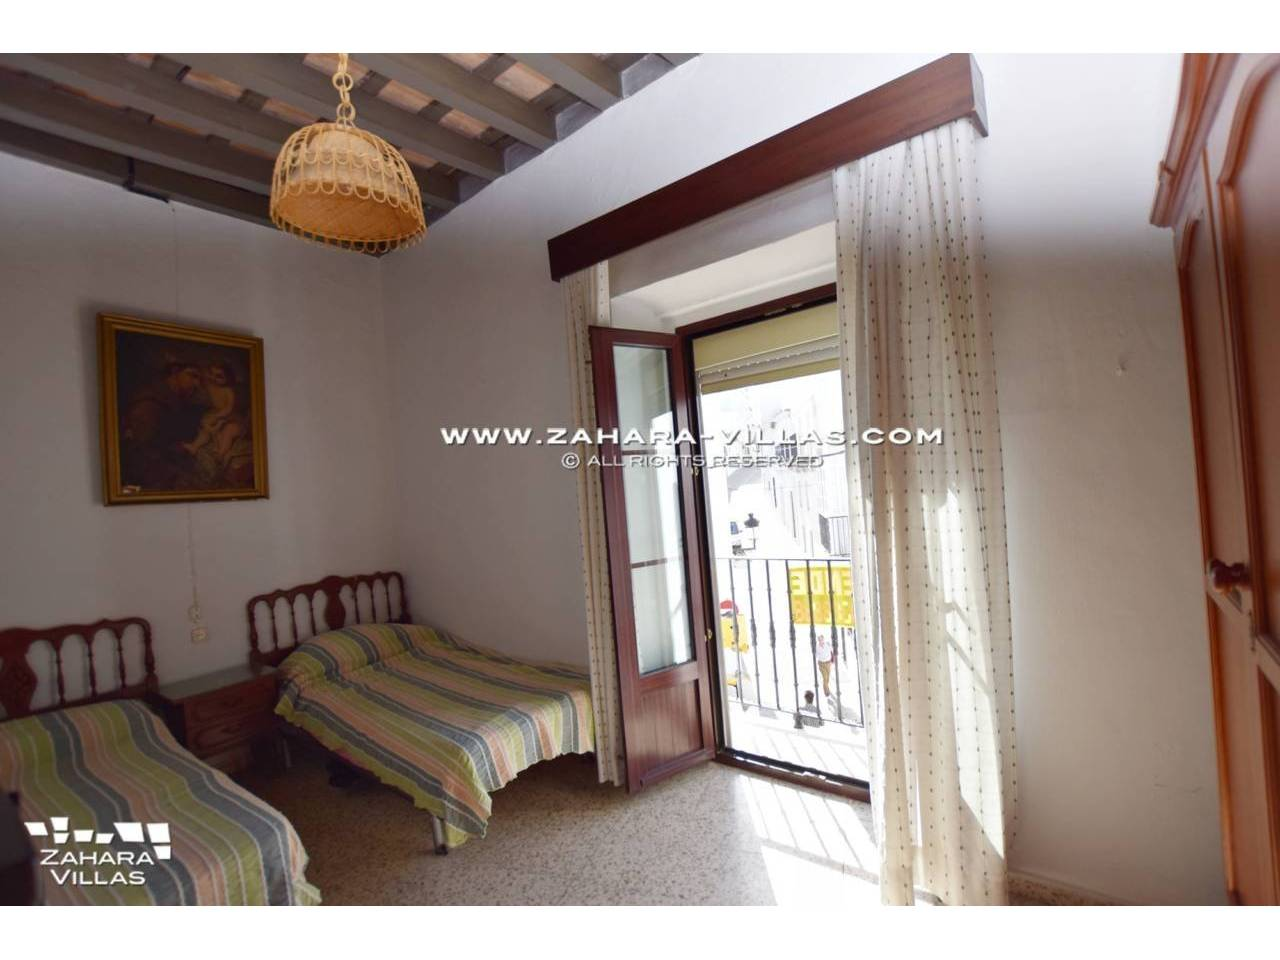 Imagen 6 de House for sale located in pedestrian street of Vejer de la Frontera